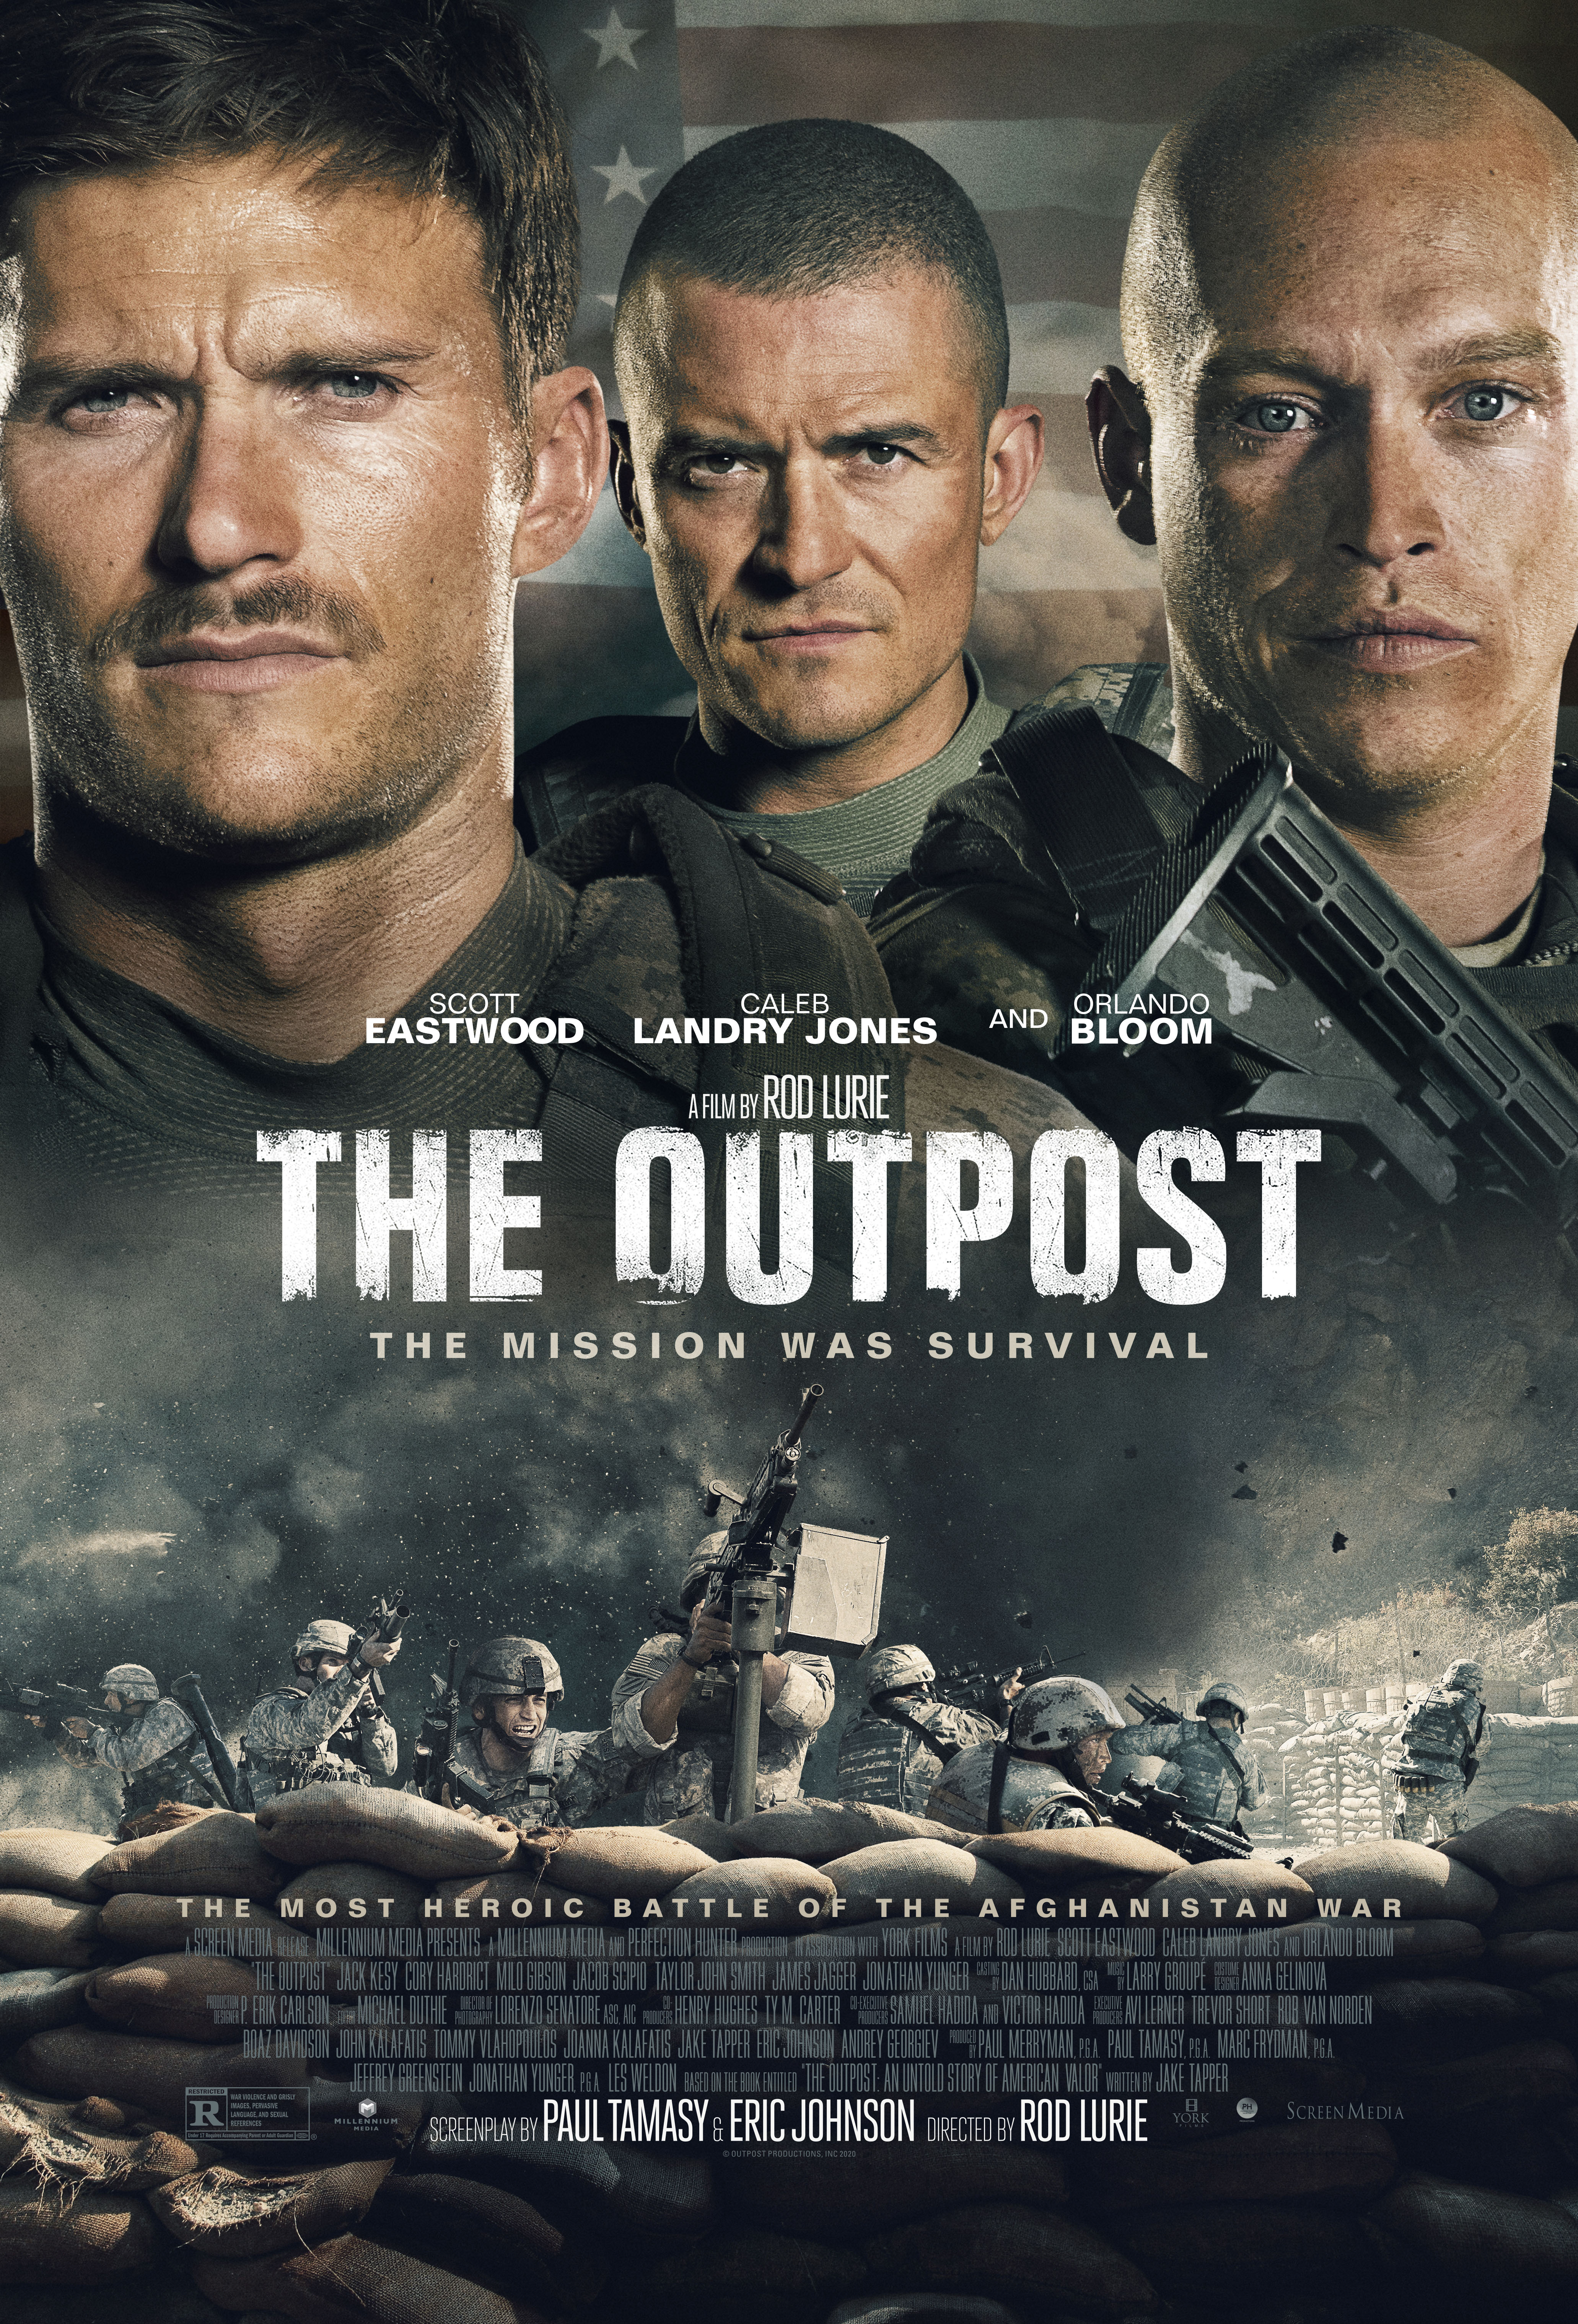 A Soldiers Christmas Cast  2020 The Outpost (2020)   IMDb